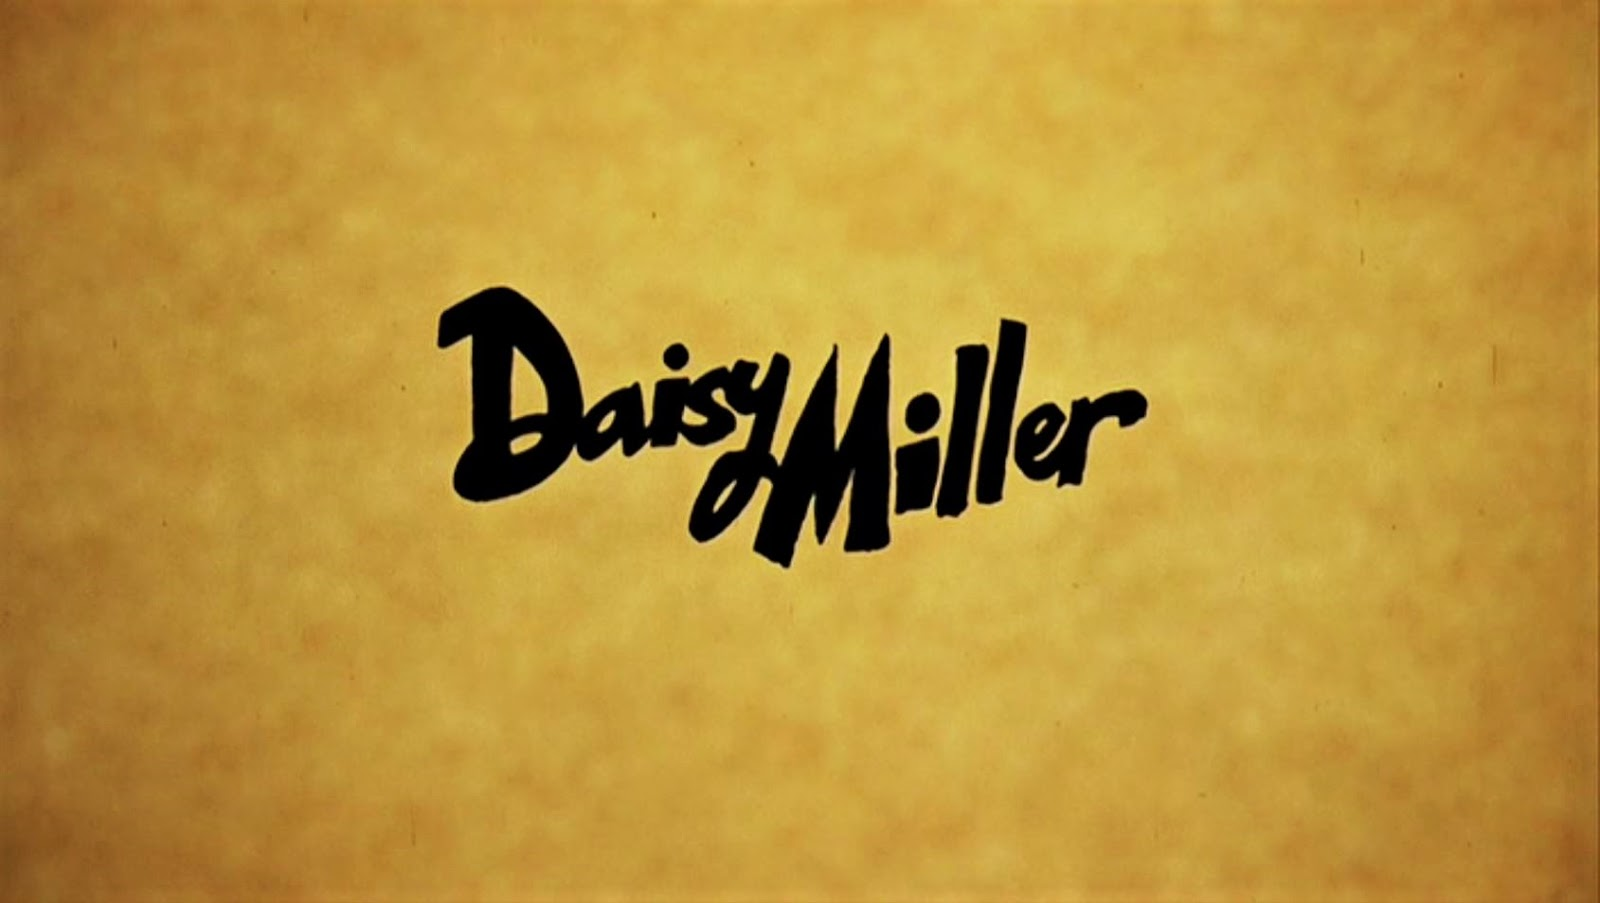 dreams are what le cinema is for daisy miller  daisy miller 1974 ""